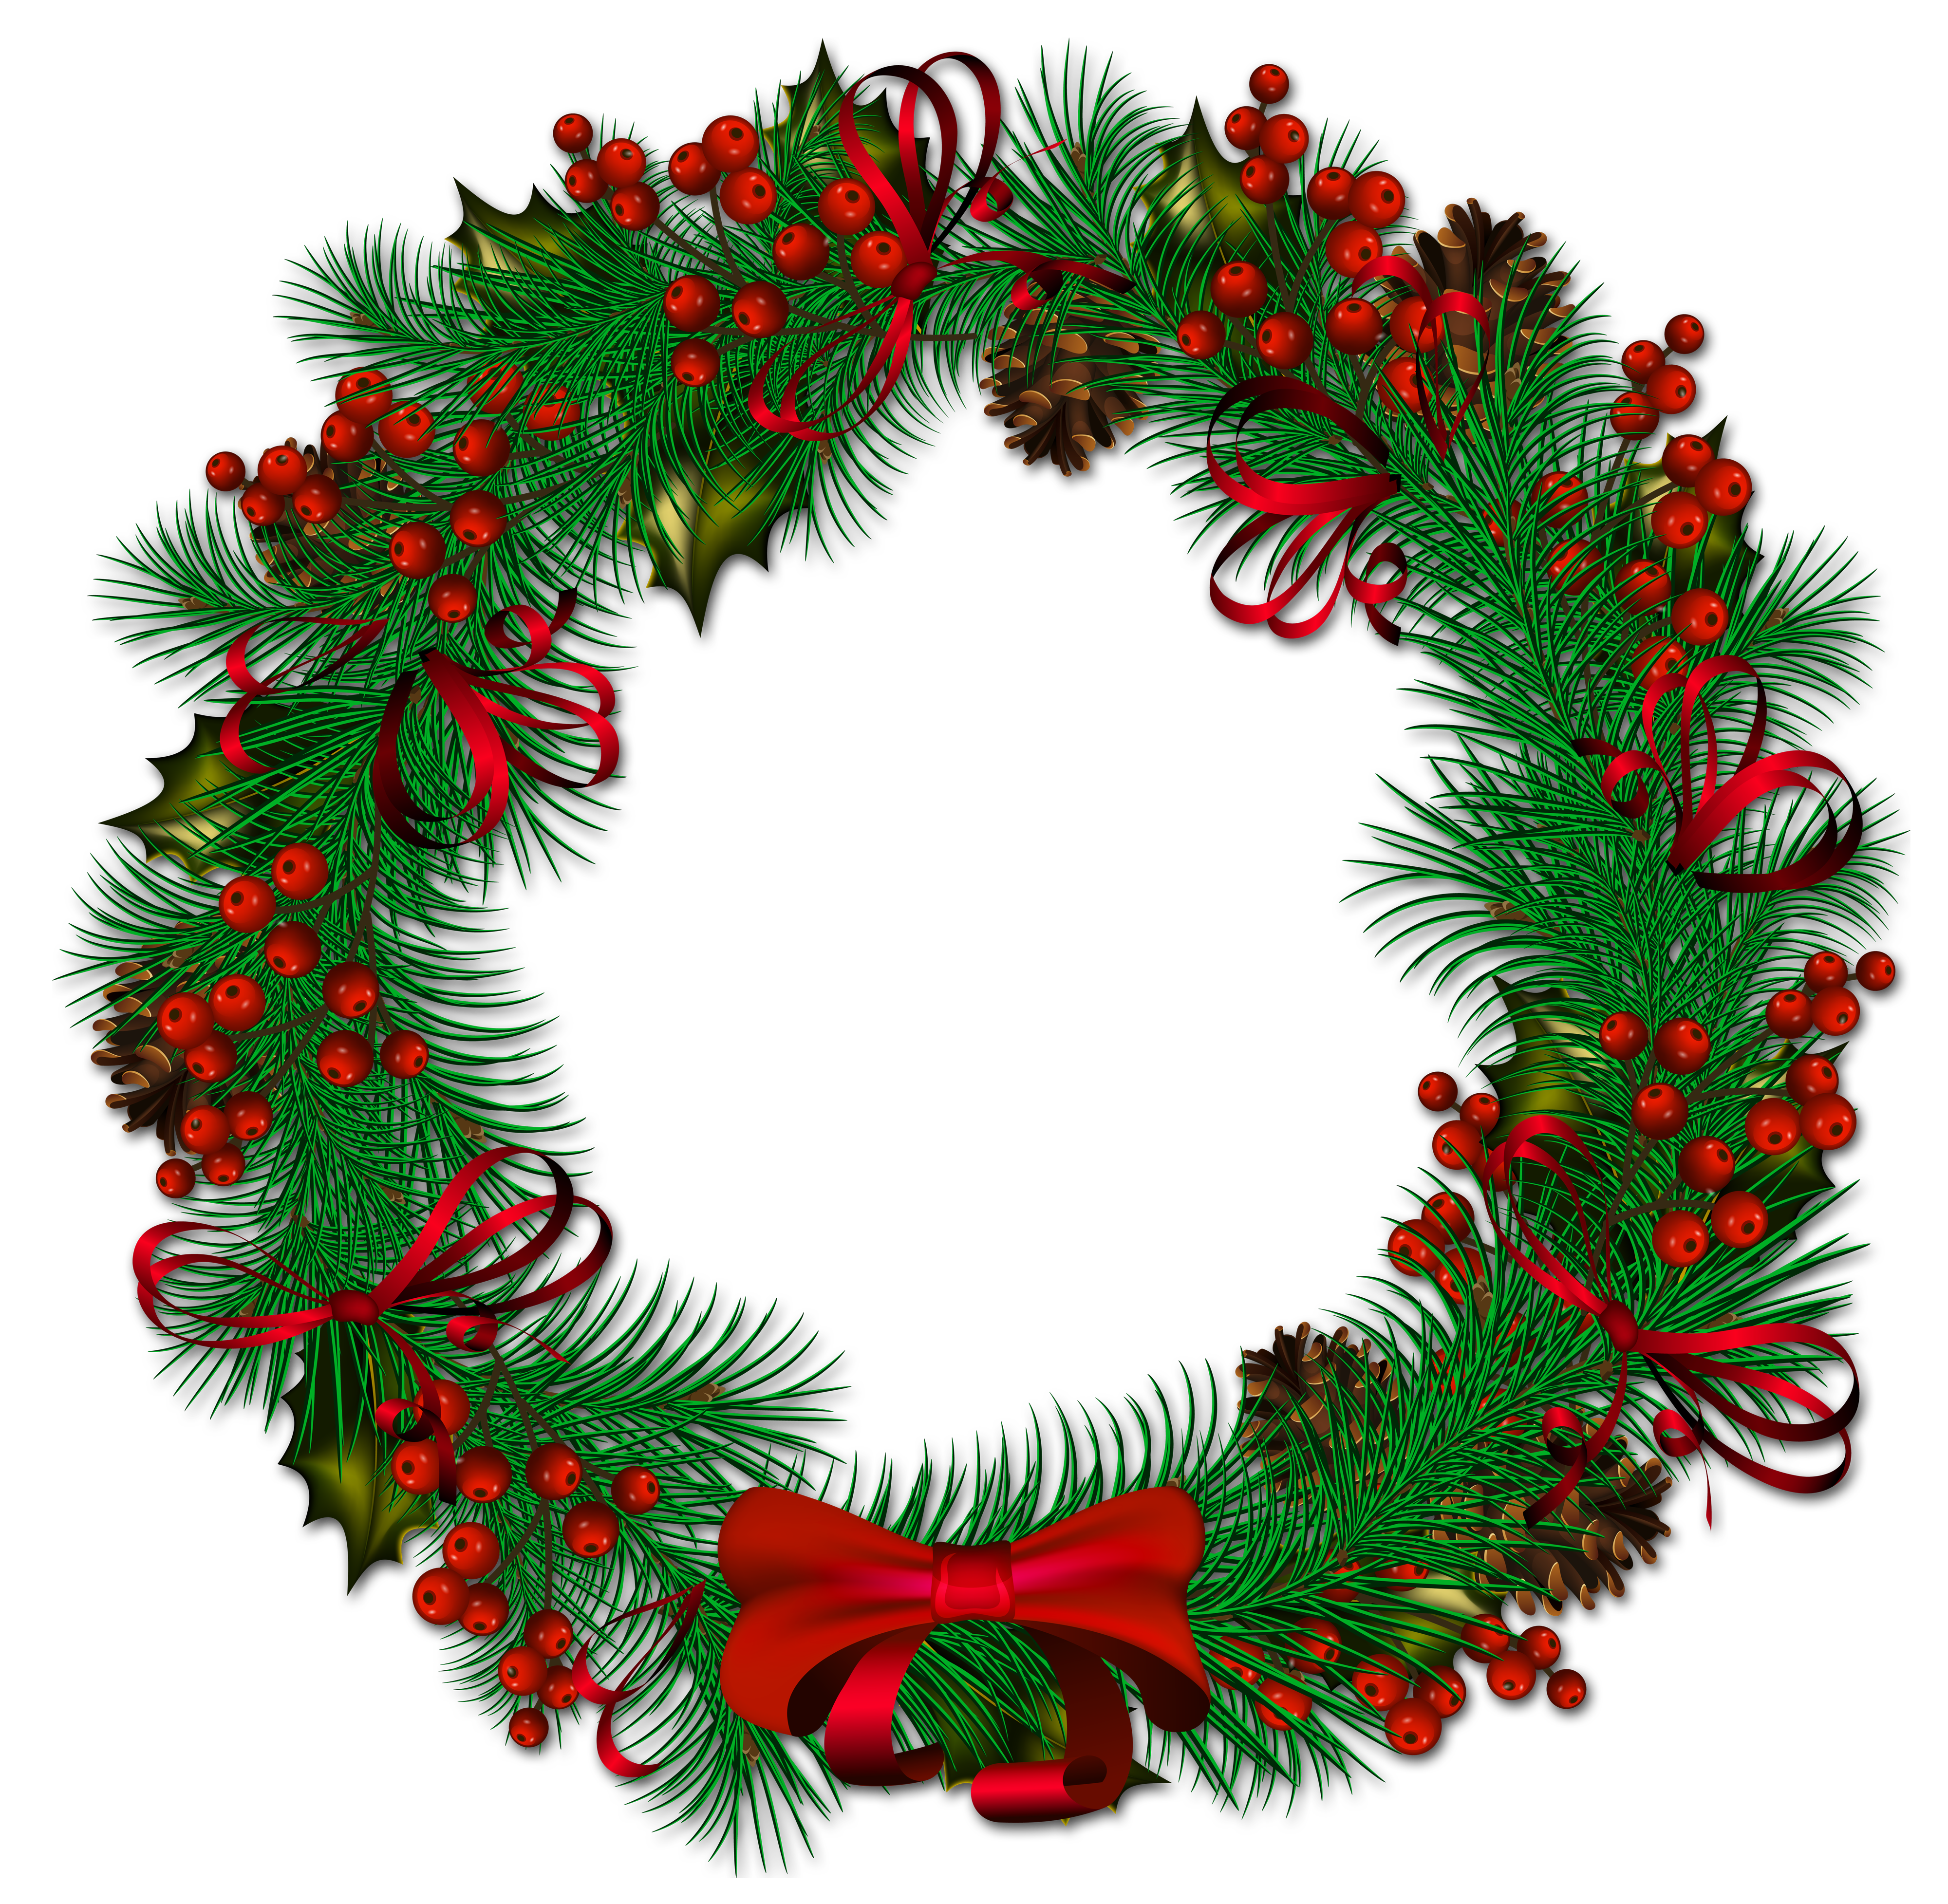 4000x3910 Transparent Christmas Pinecone Wreath With Red Ribbon Clipart